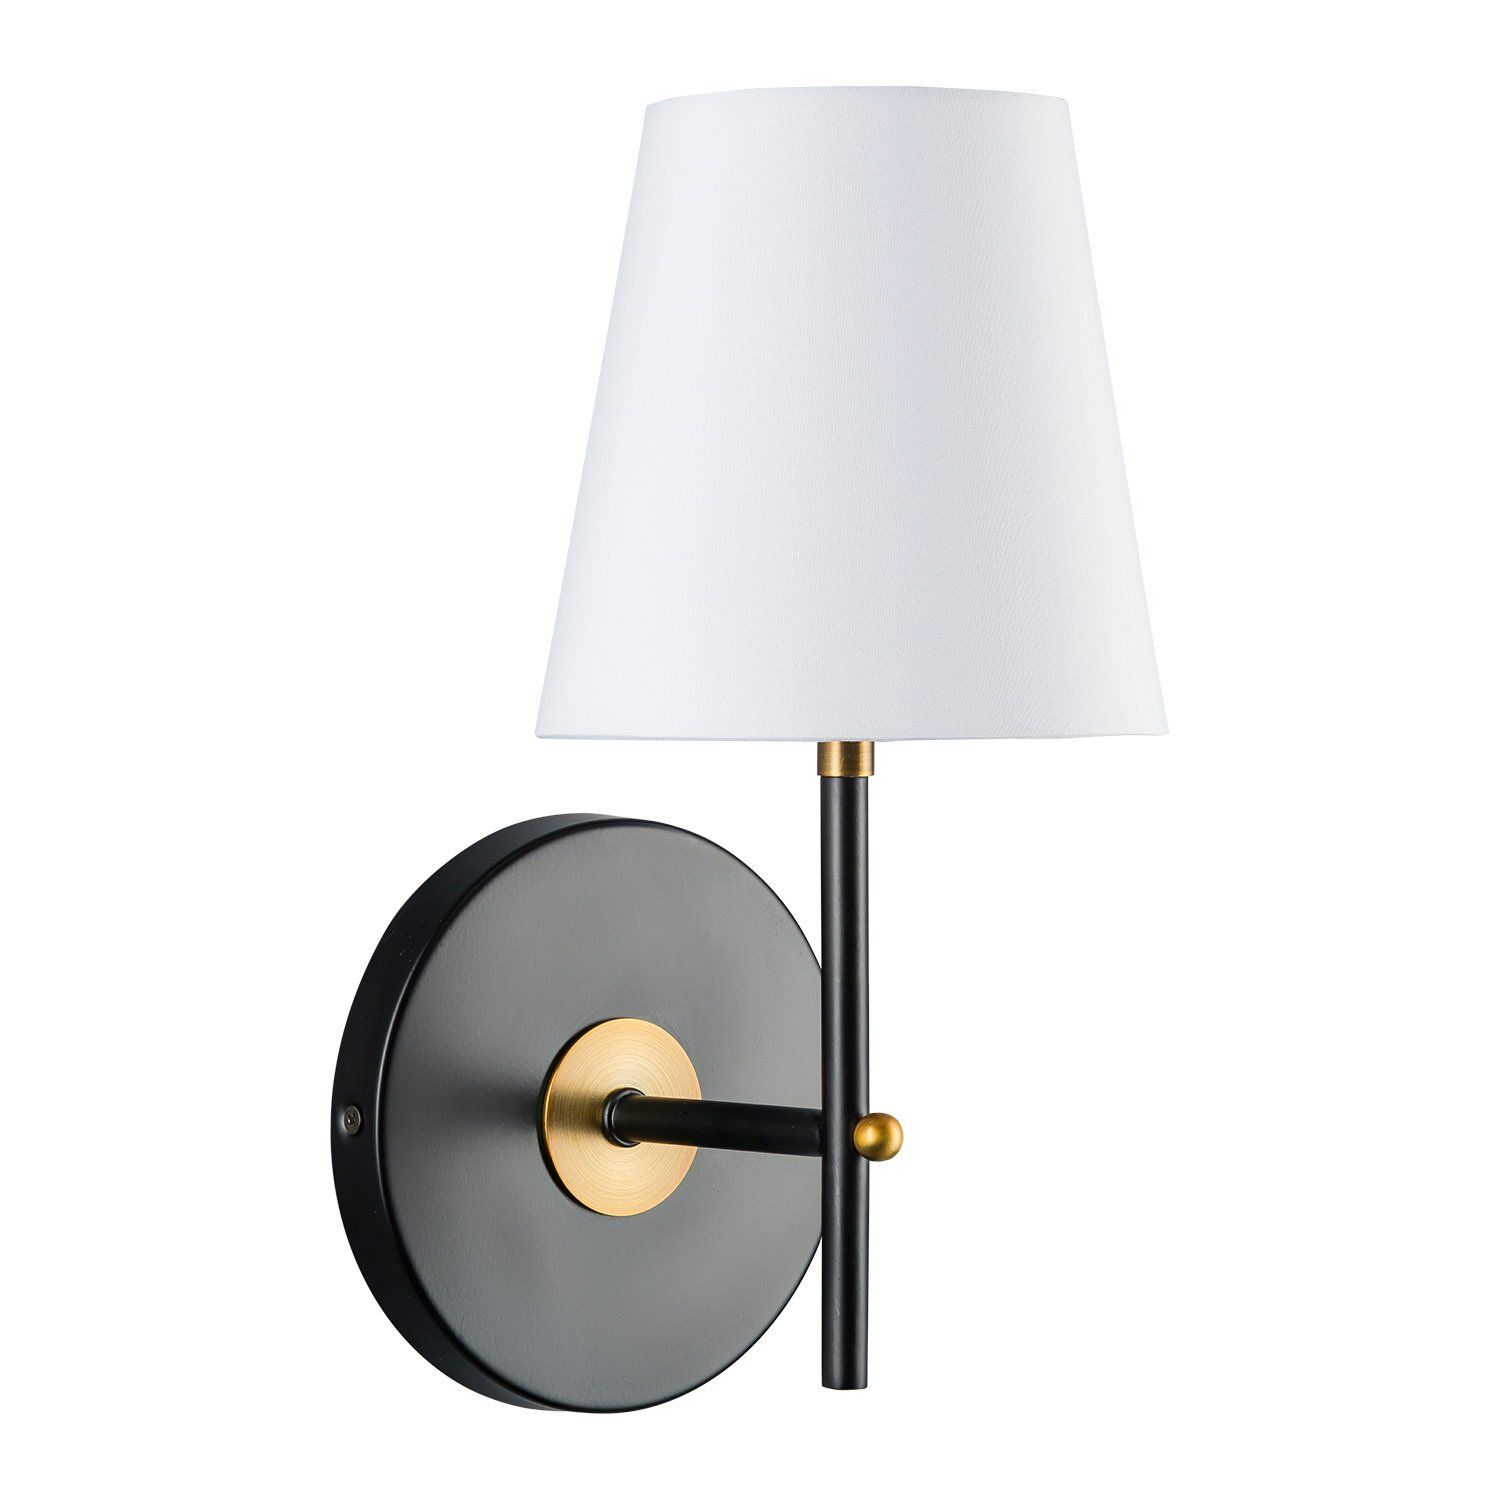 37 Tamb Sconce Black With Antique Brass One Light Fixture With Fabric Shade Hardwire Wall Mount Lighting Linea Di Lia Sconces Wall Sconces Fabric Shades